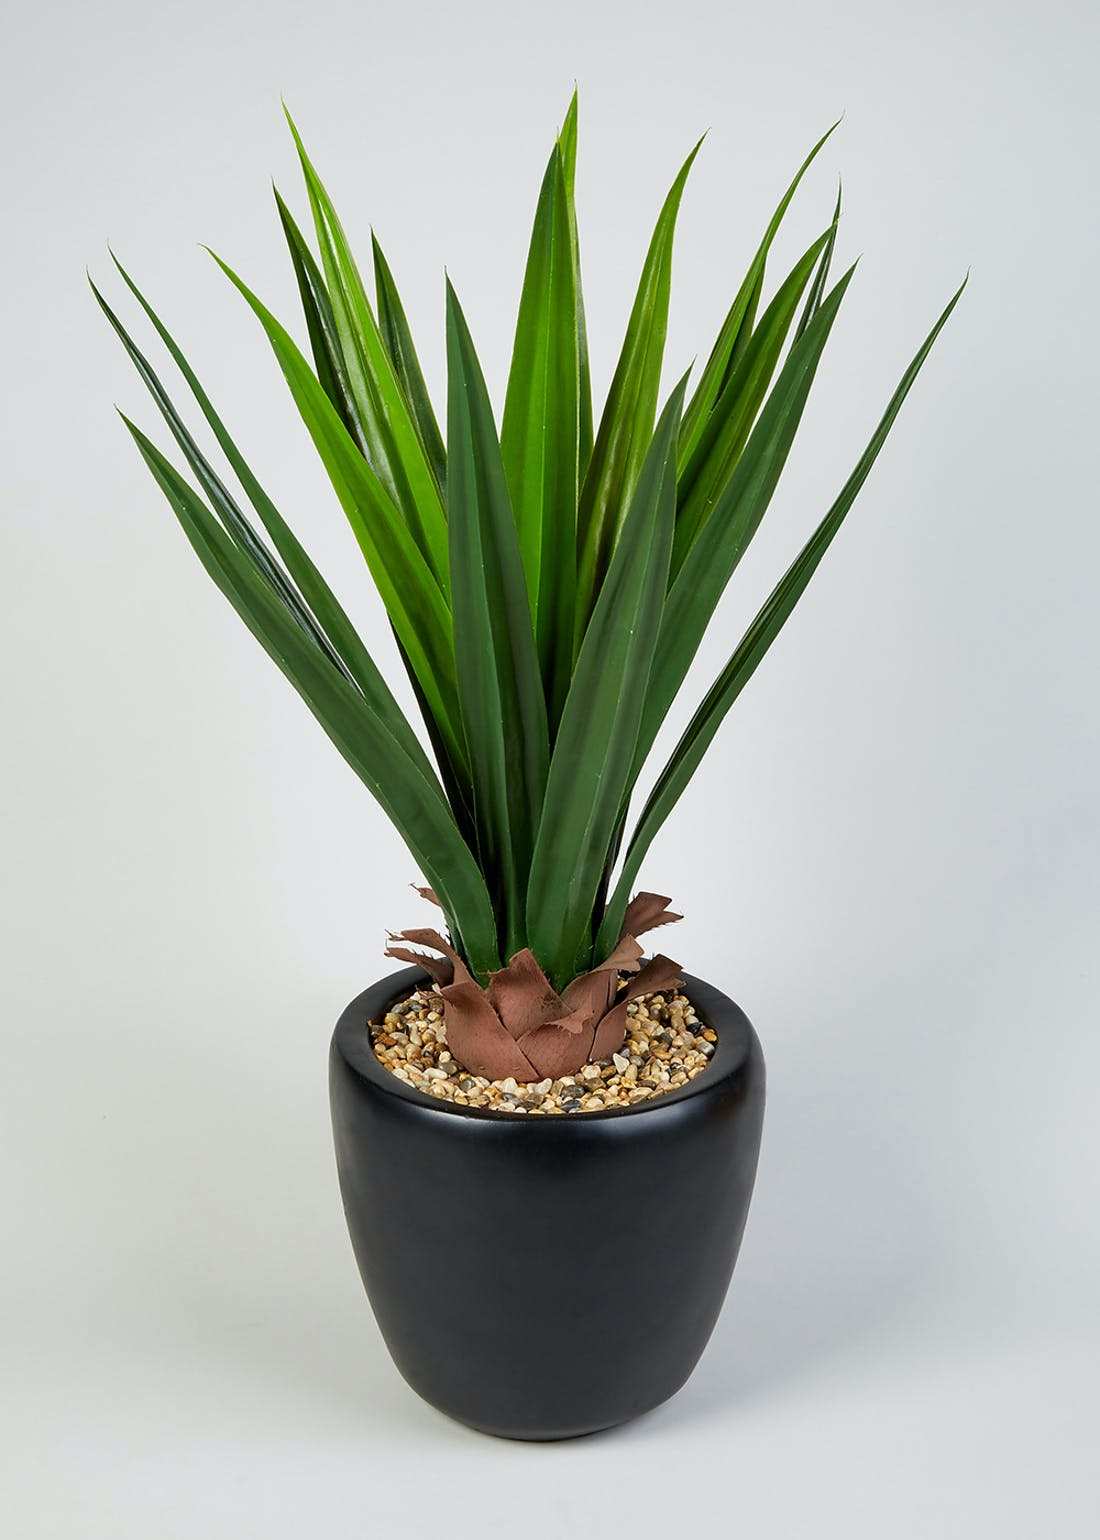 Large Agave Plant in Pot (90cm x 60cm)